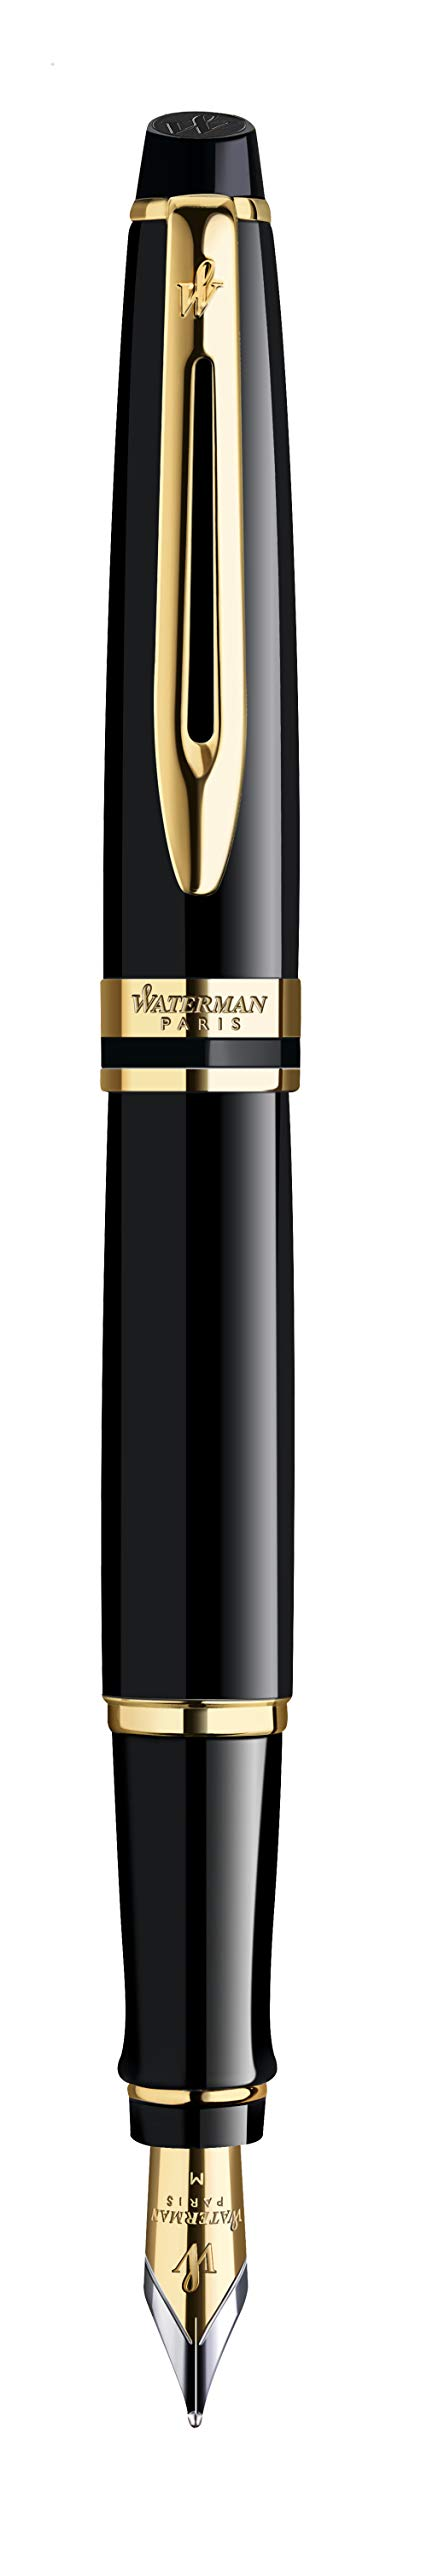 Waterman Expert Fountain Pen, Gloss Black with 23k Gold Trim, Medium Nib with Blue Ink Cartridge, Gift Box by Prismacolor (Image #5)